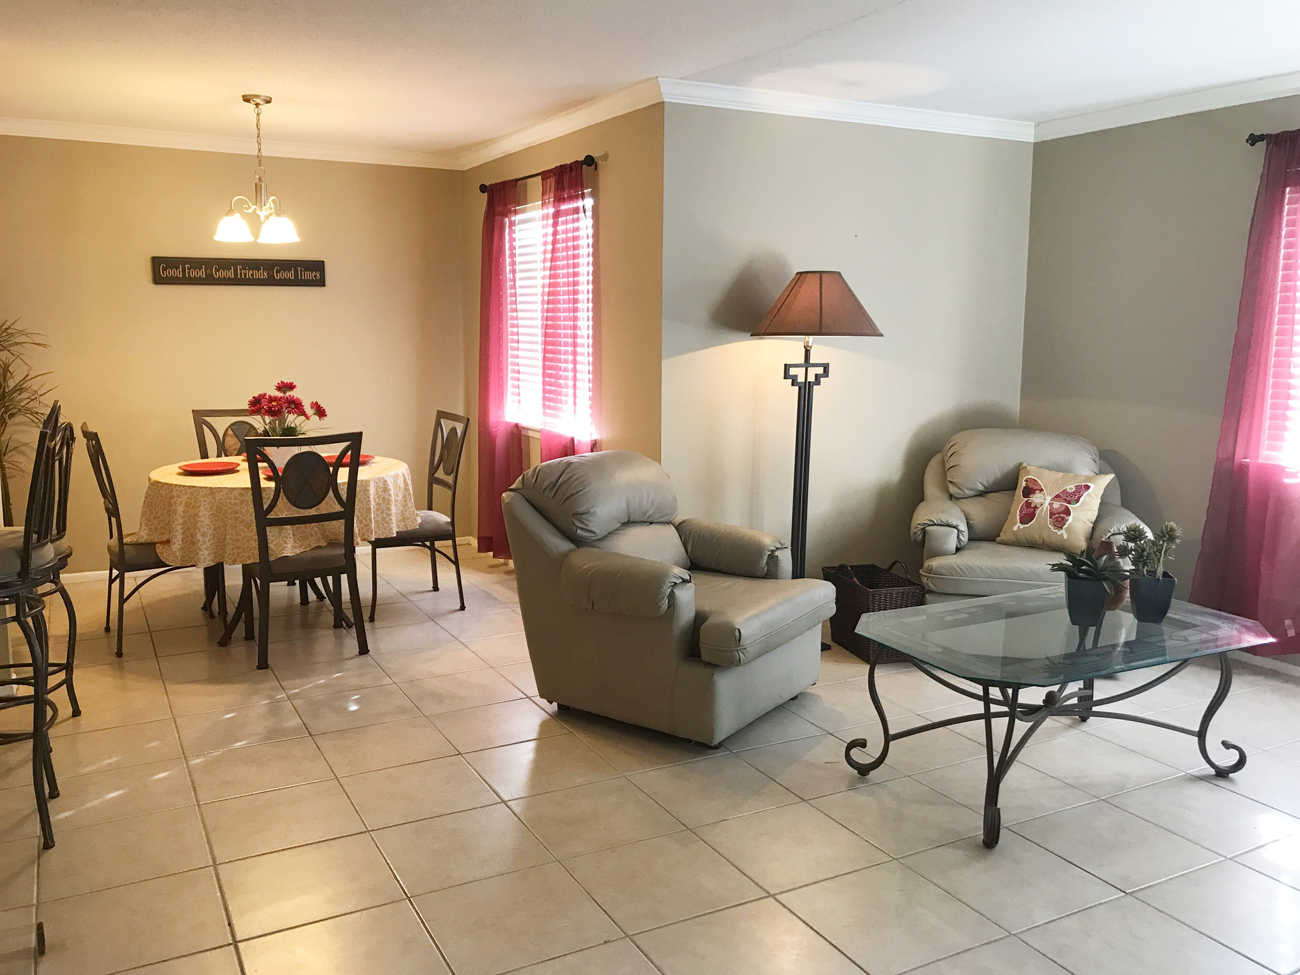 Upgraded Flooring at Windsor Park Apartments in Victoria, Texas